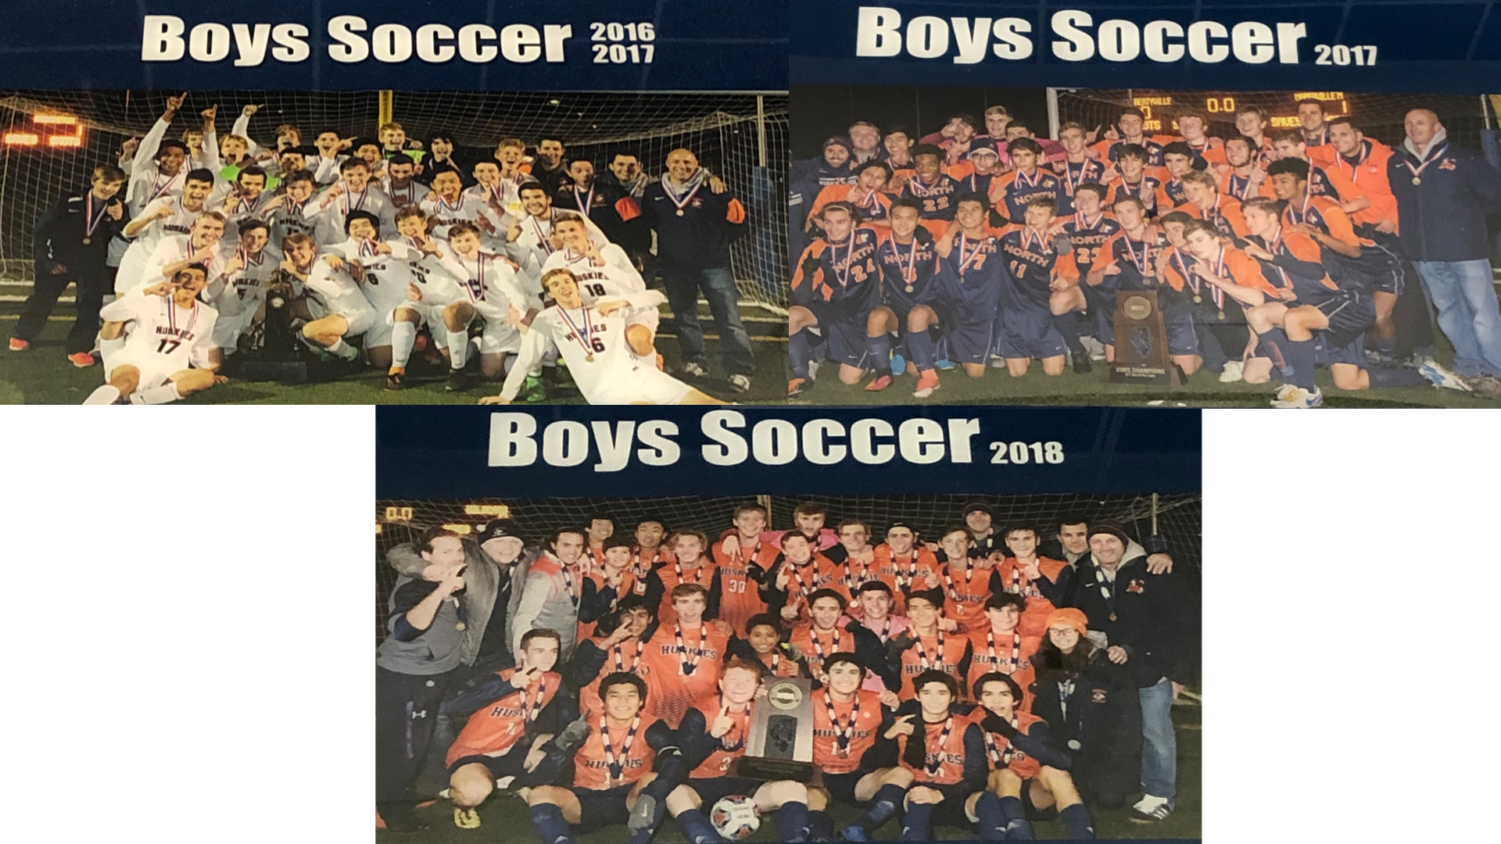 Top left: State Champions boys soccer team 2016-2017 Top right: State Champions boys soccer team 2017-2018 Bottom: State Champions boys soccer team 2018-2019